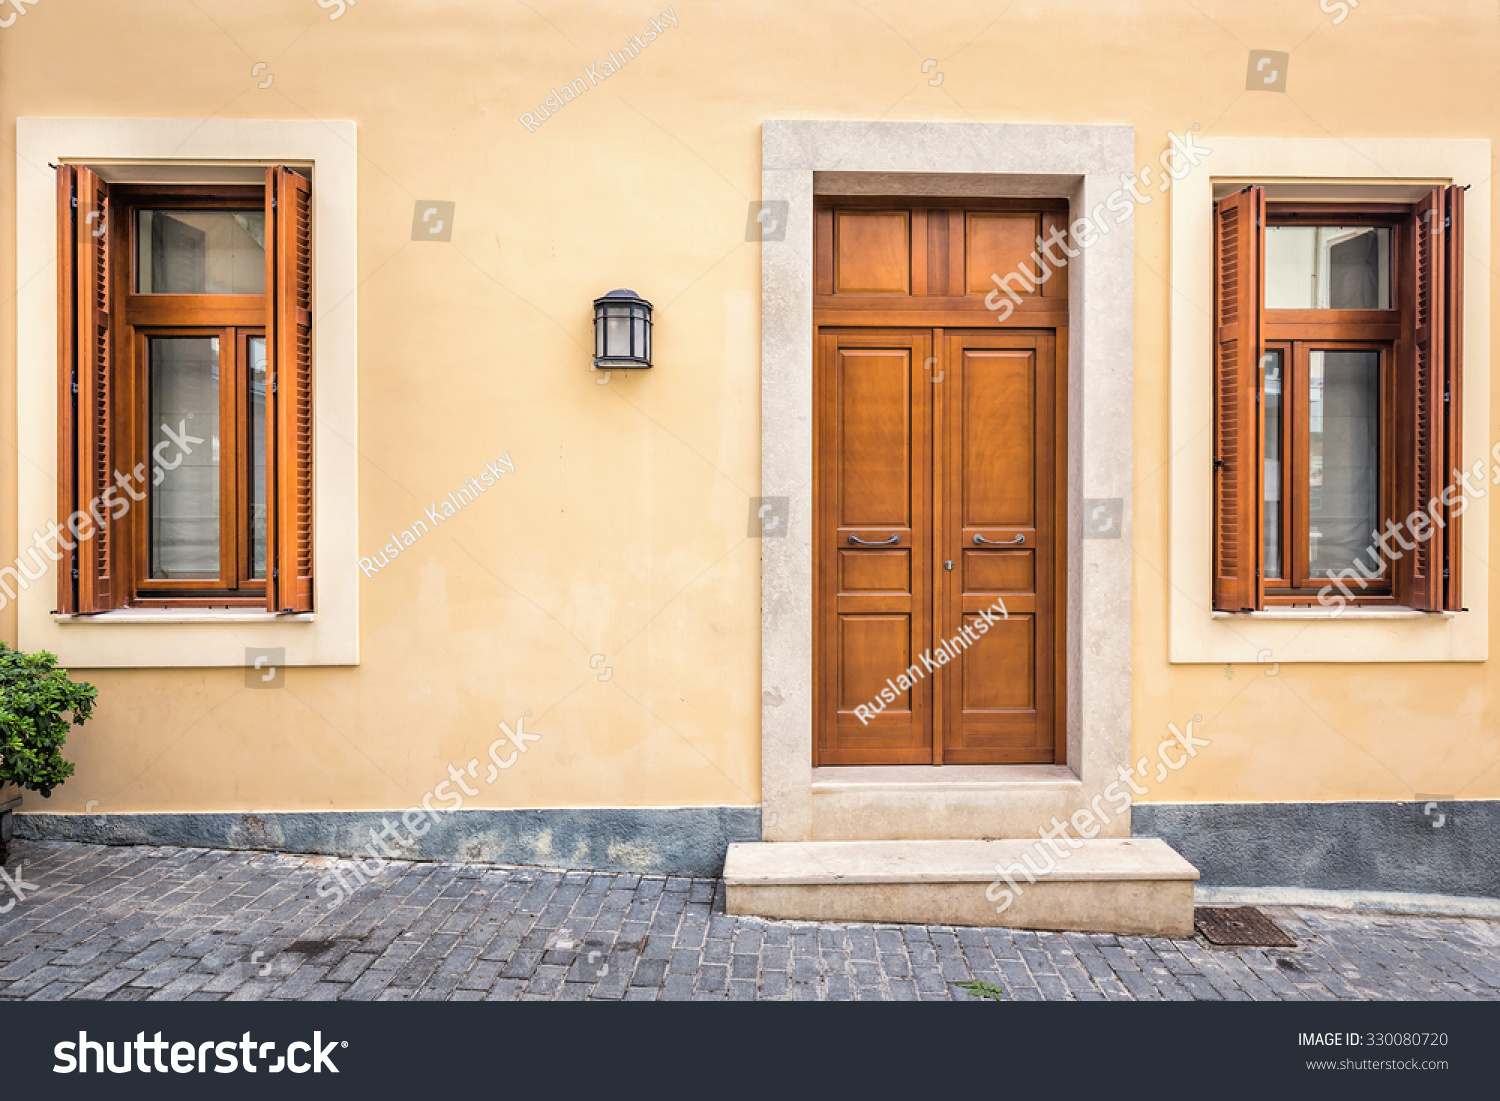 Wood Door And Windows With Wooden Shutters On Peach Colored Wall At  Santorini, Greece.